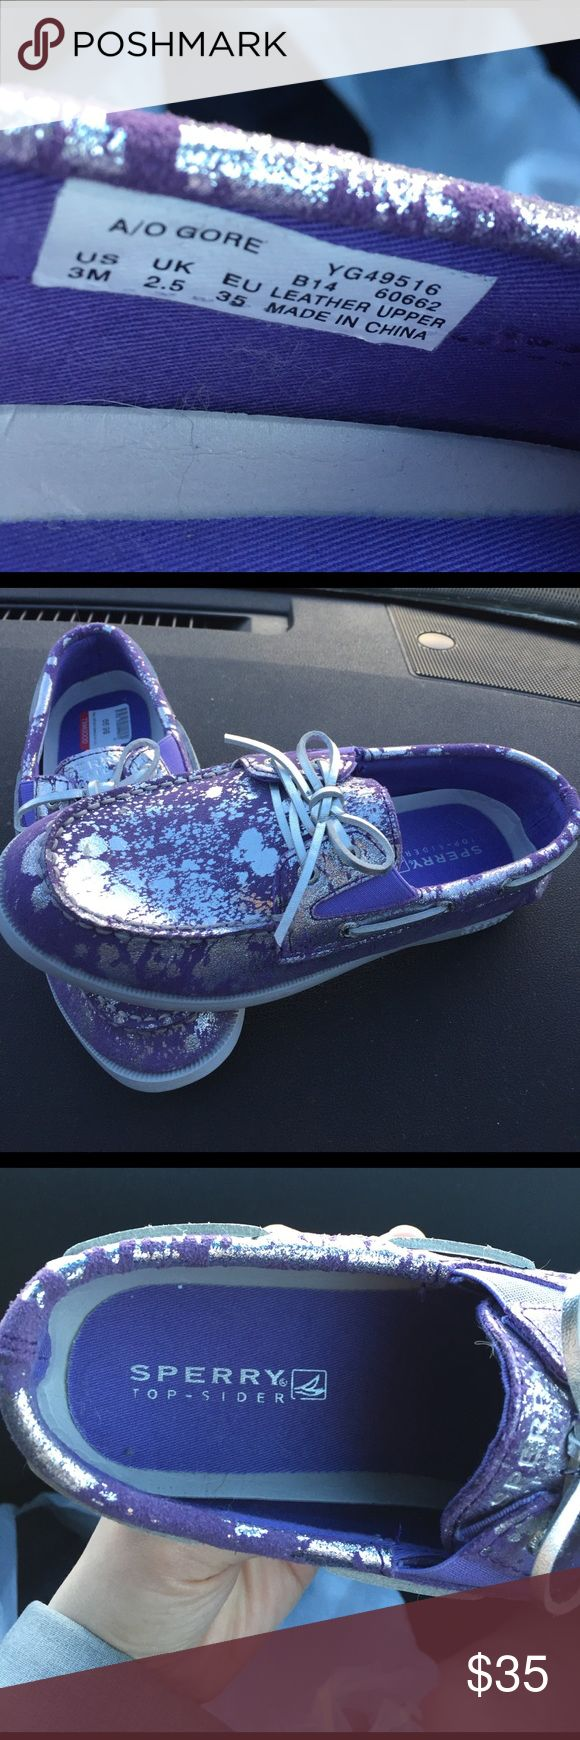 Sperry Top Sider size 3 Purple and silver Sperry Top Siders. Great condition! Sperry Top-Sider Shoes